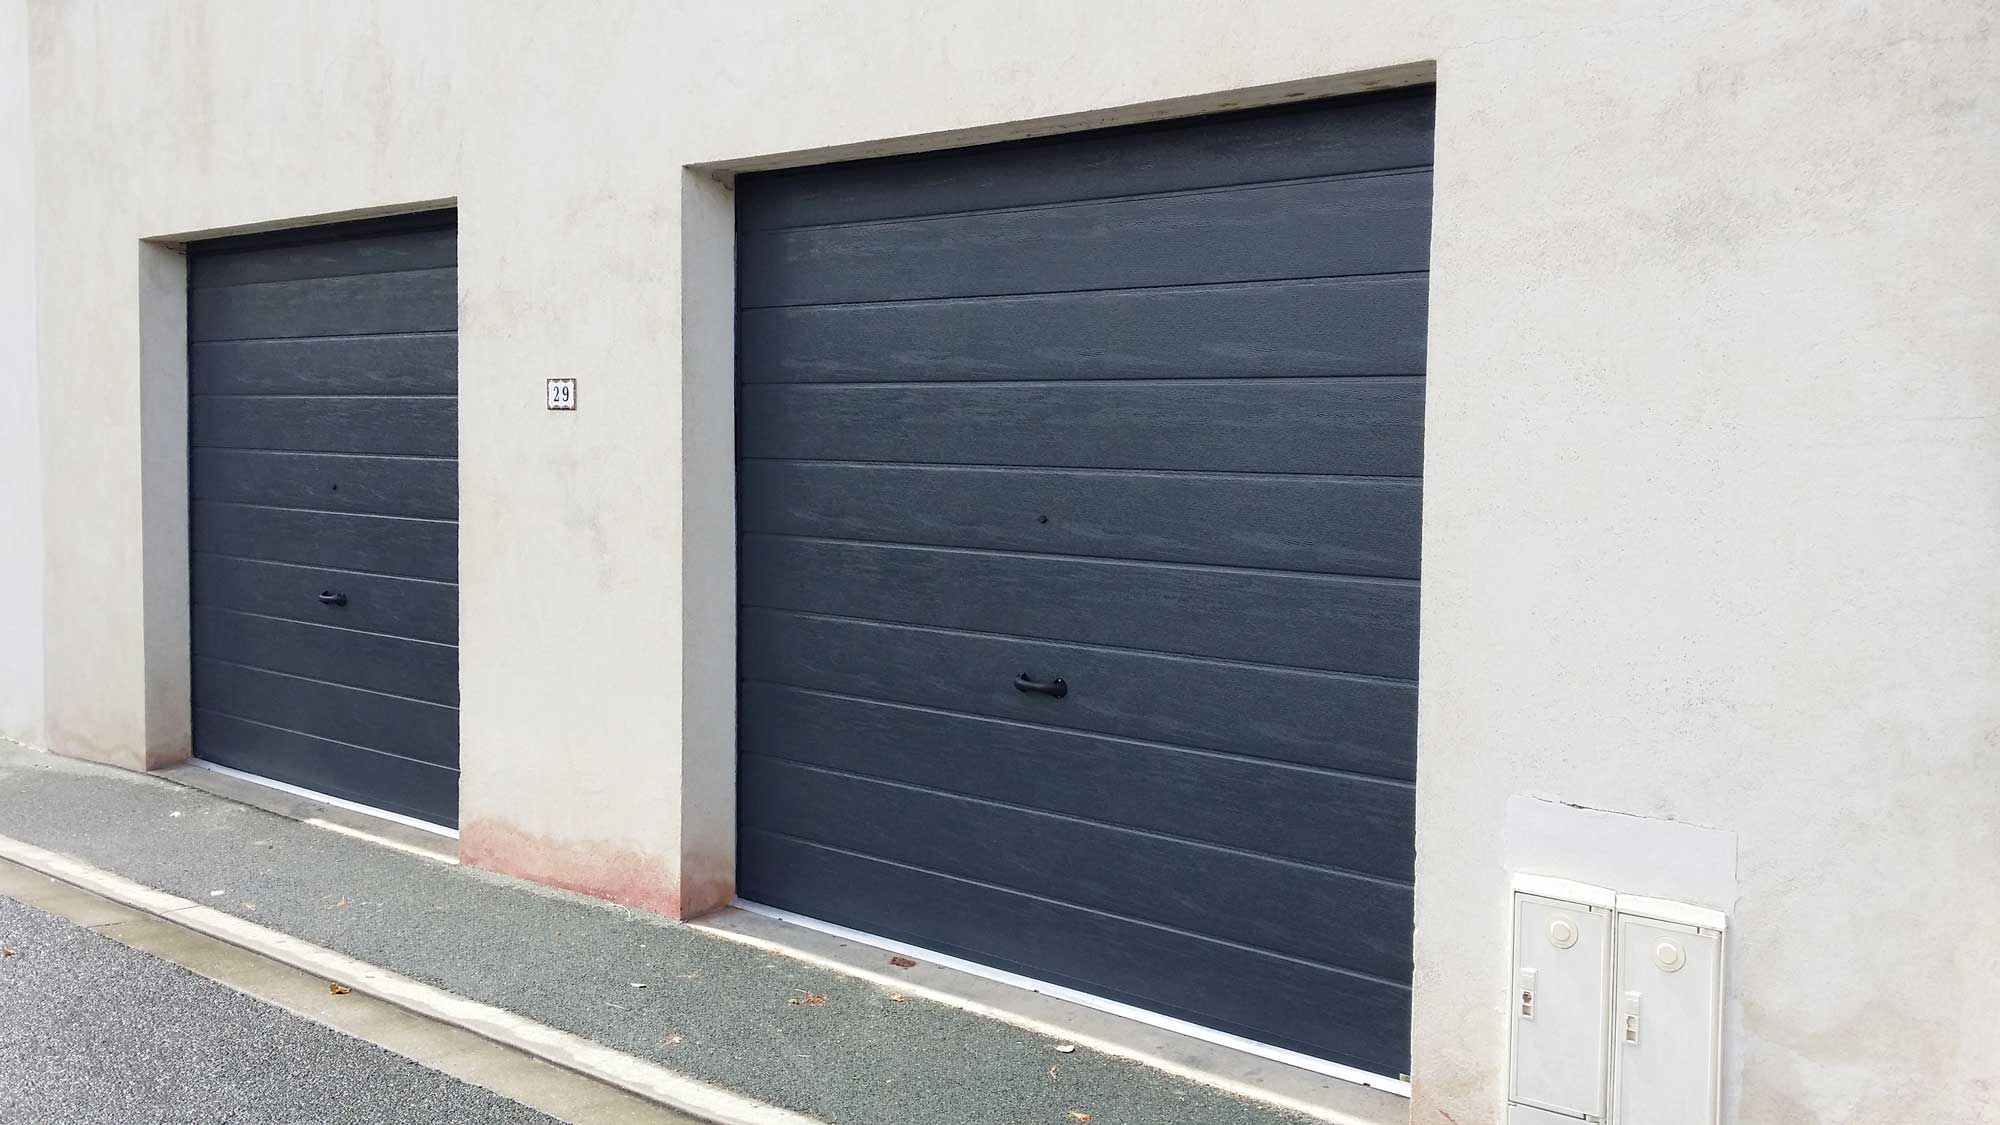 Pose de portes de garage sectionnelle 7016 sur mesure par for Installer chatiere porte garage